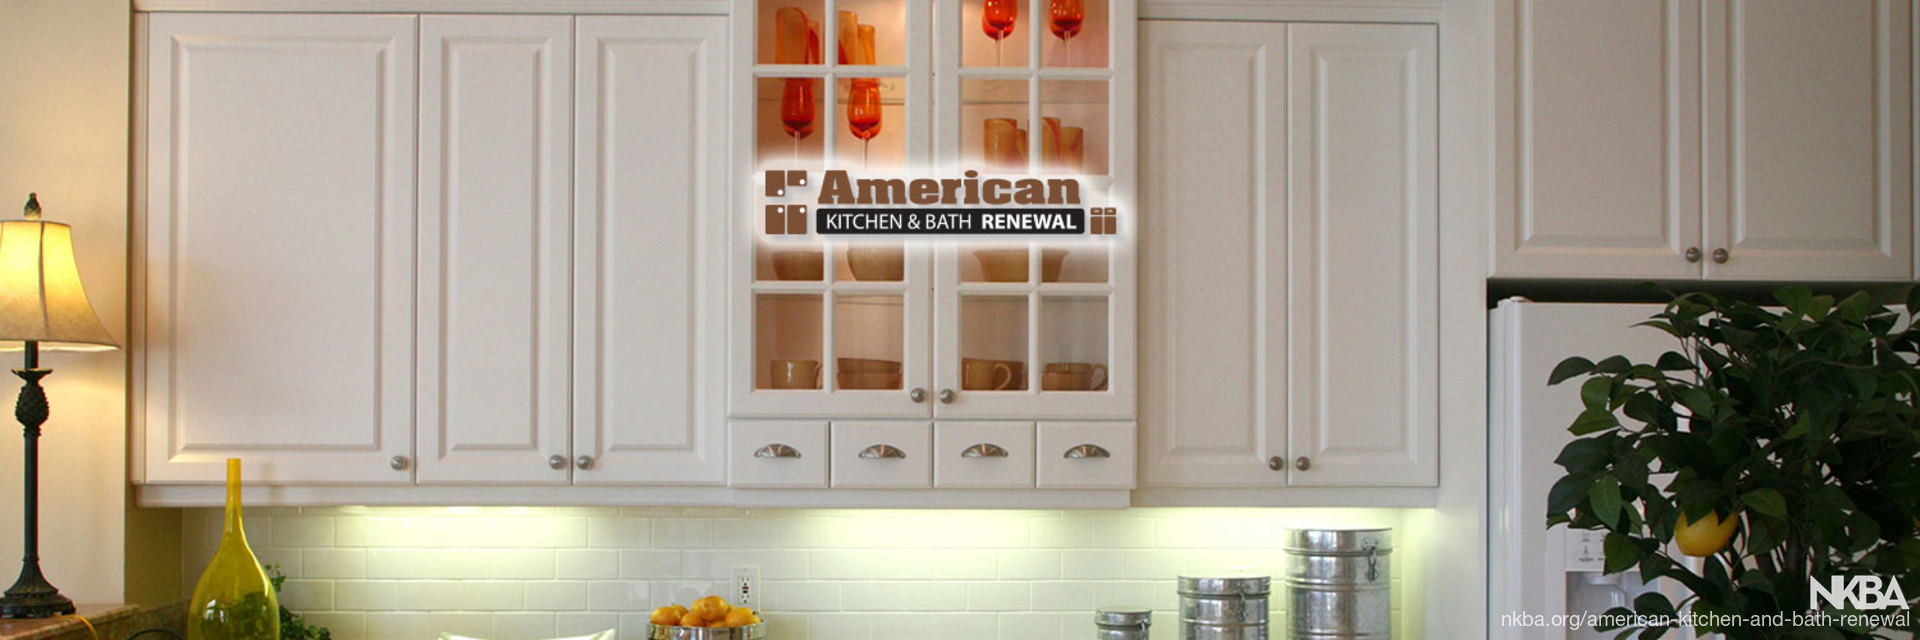 American Kitchen And Bath Renewal   NKBA